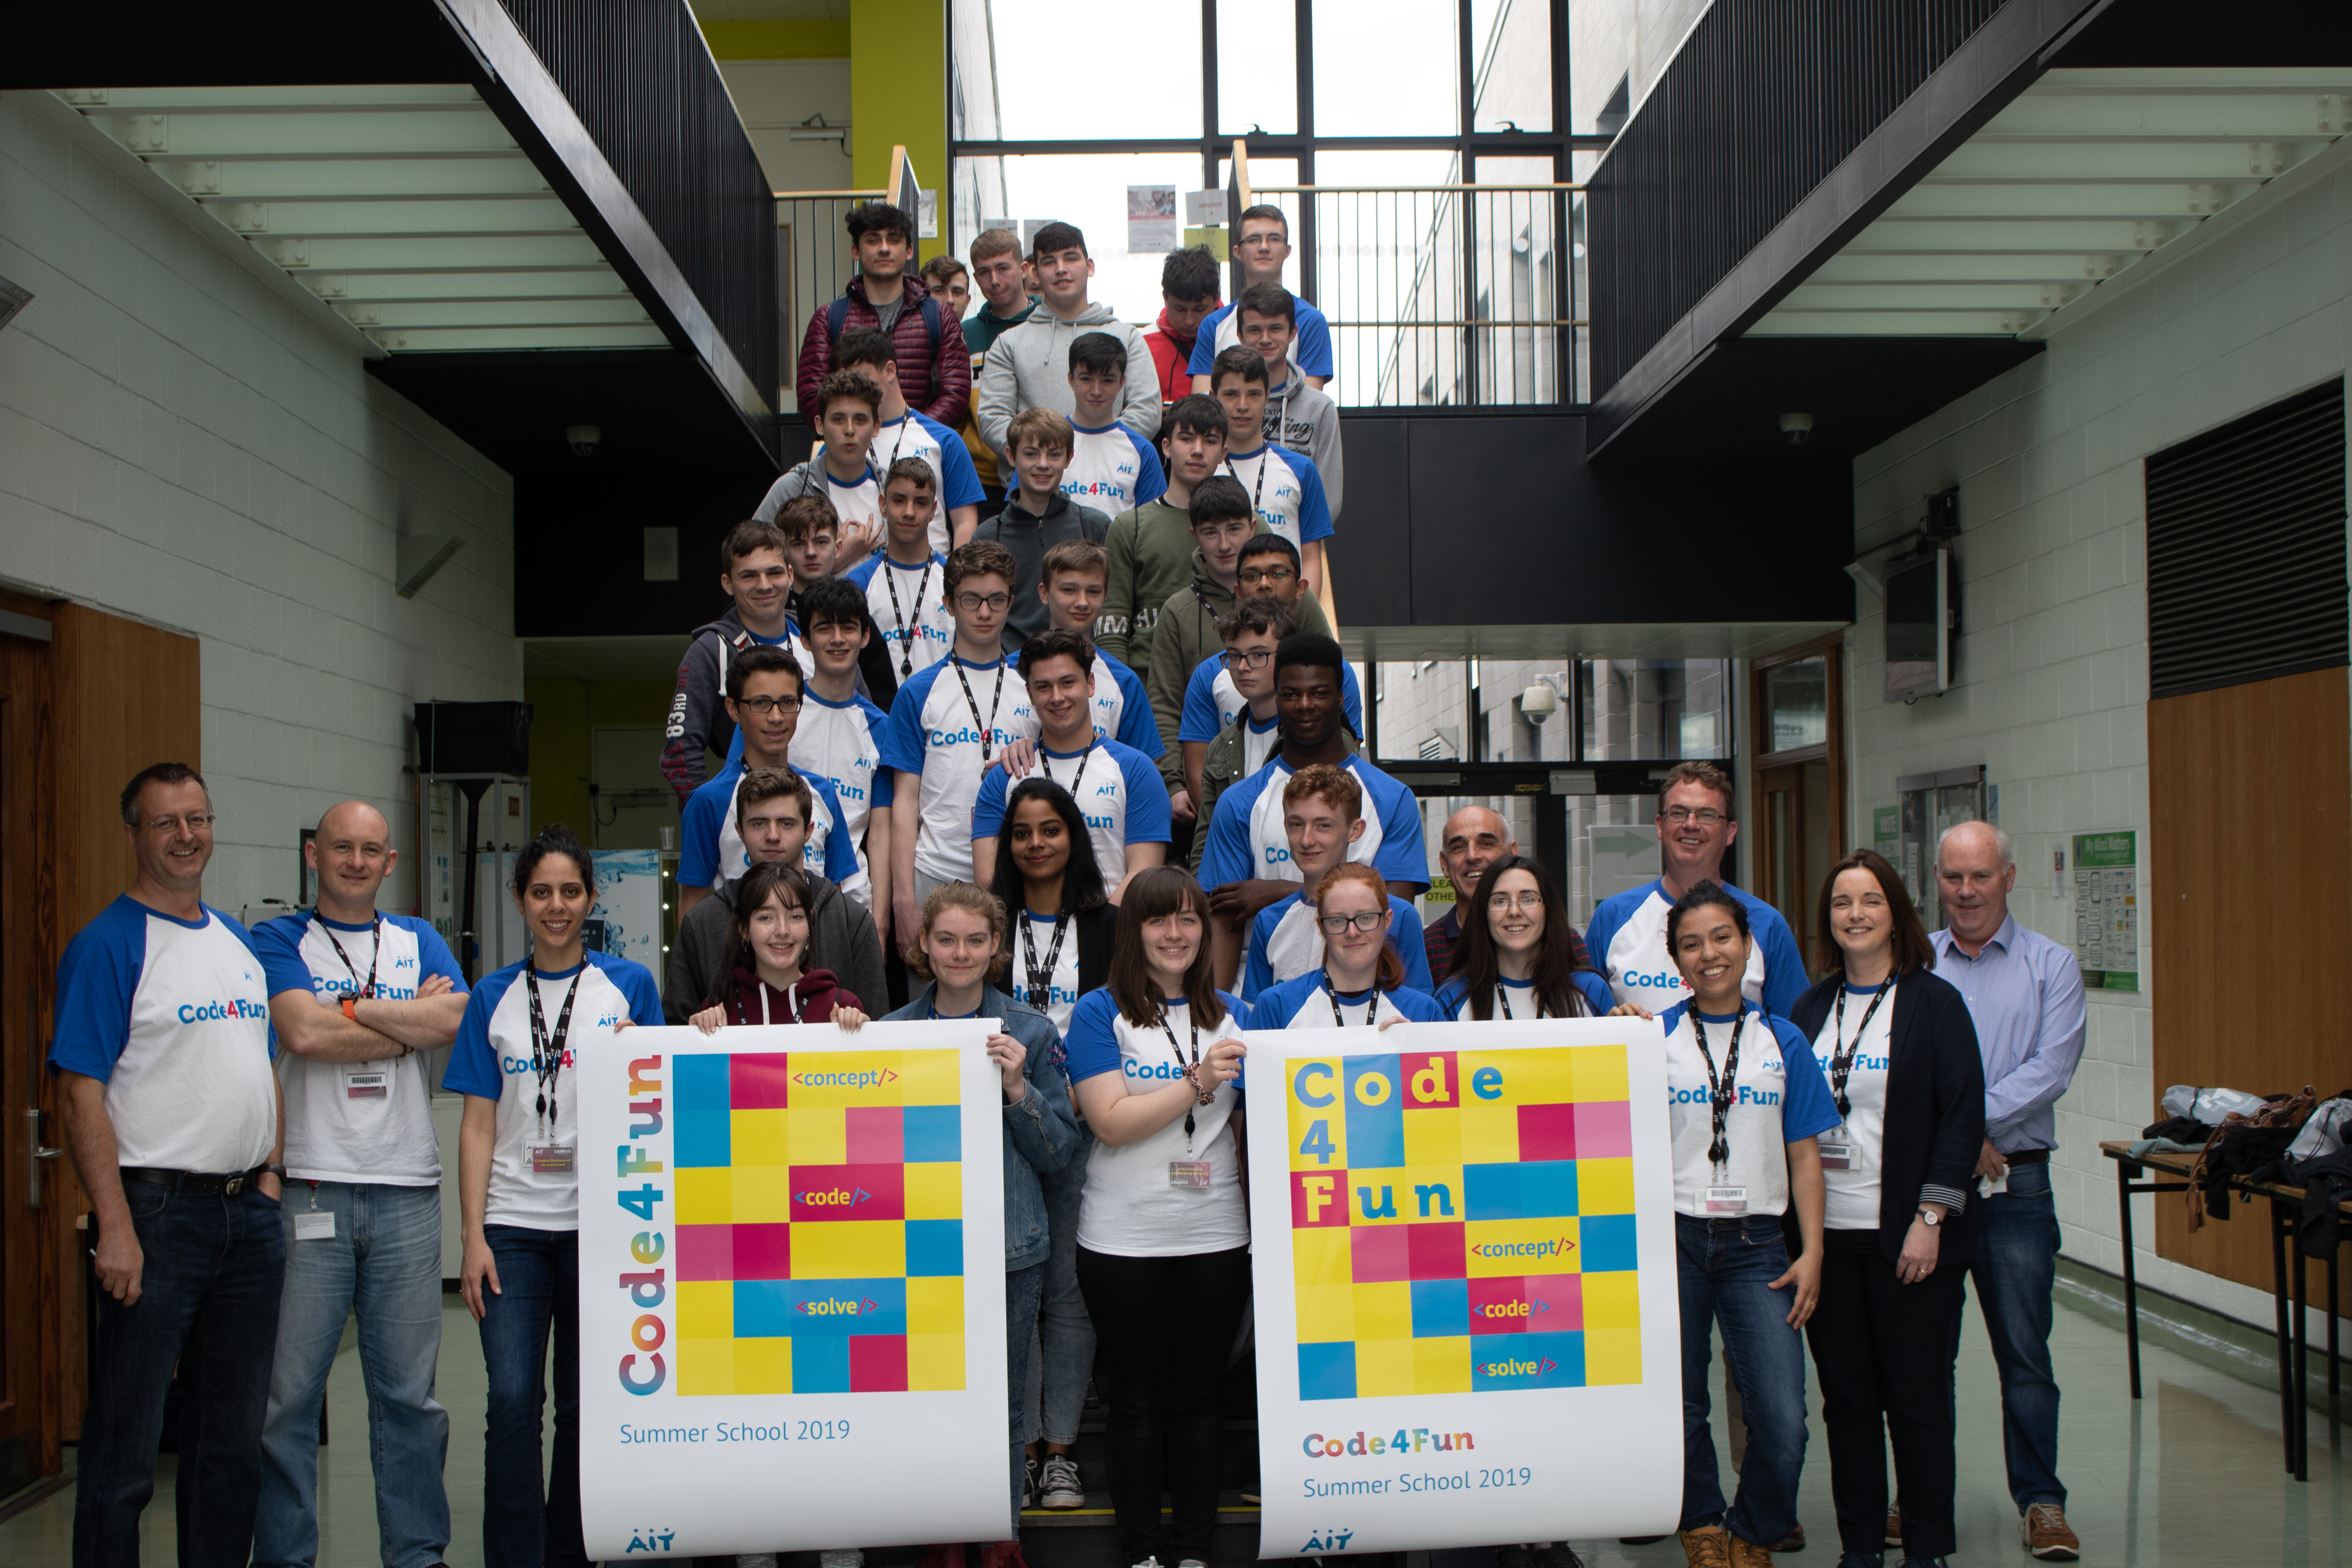 Code4Fun Summer School 2019